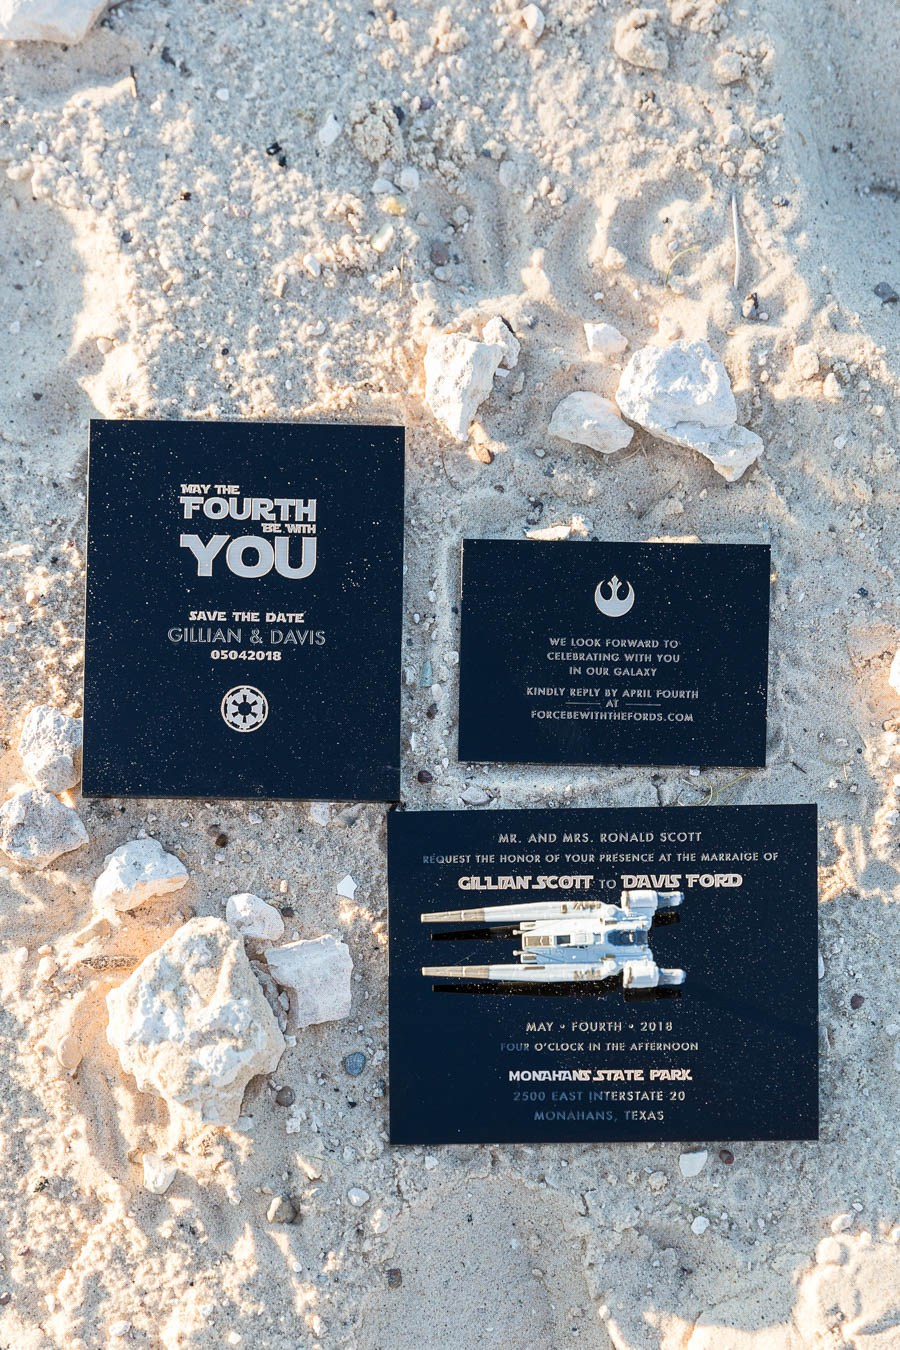 This wedding stationery in black and gold was created for the stylish Star Wars wedding shoot